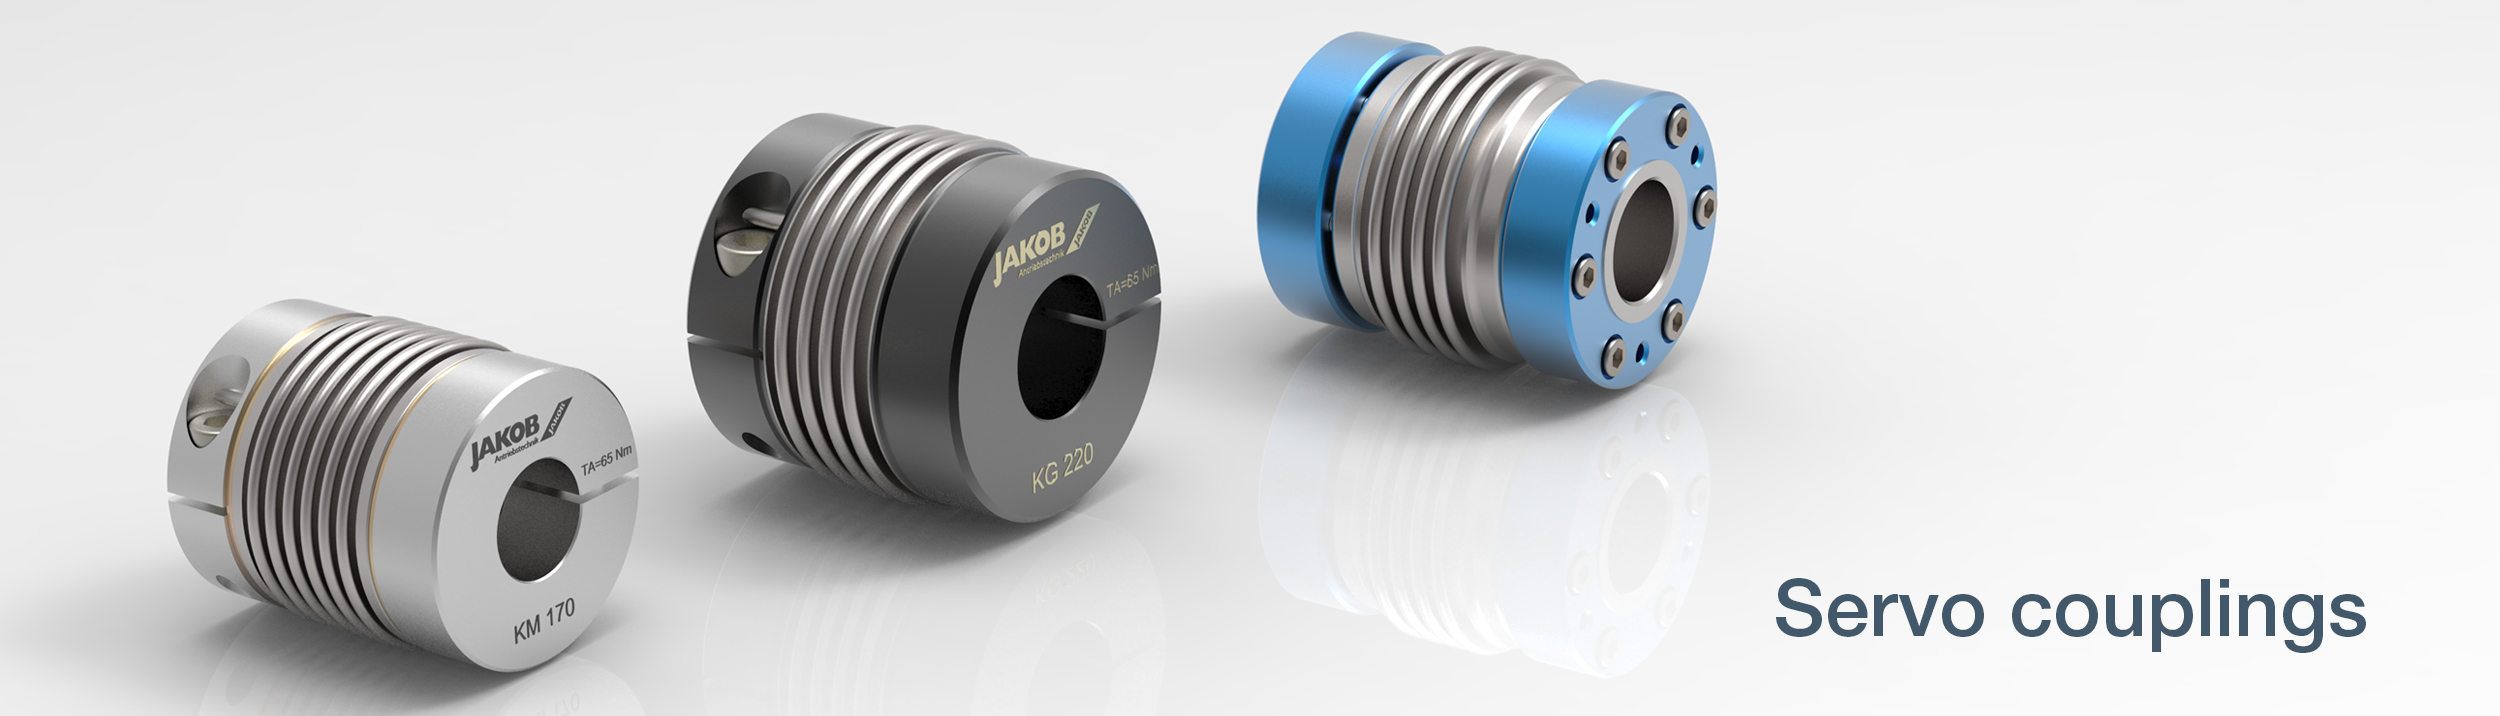 Banner Servo couplings